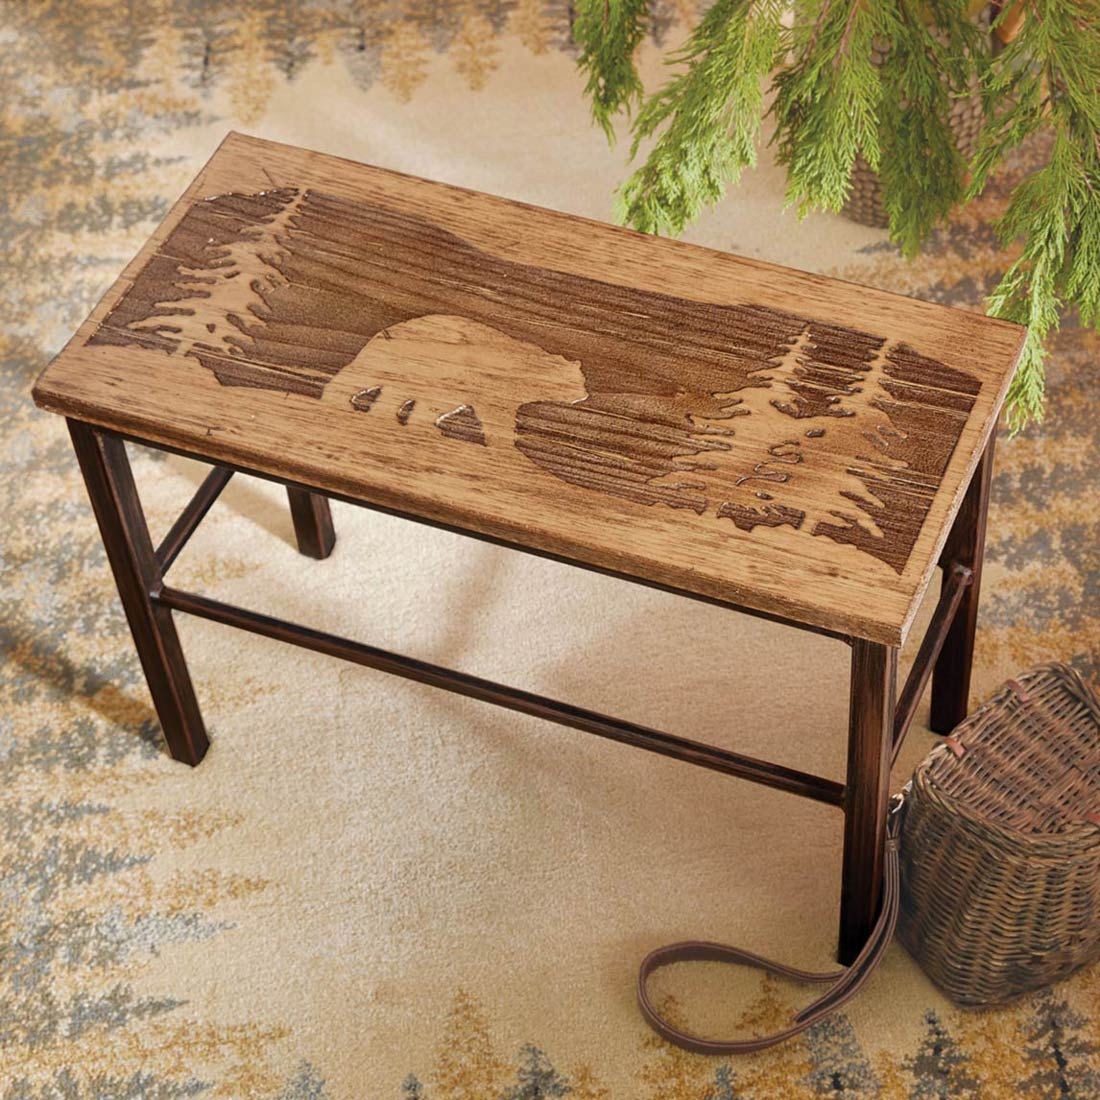 Black Forest Decor Scenic bear wood & metal bench